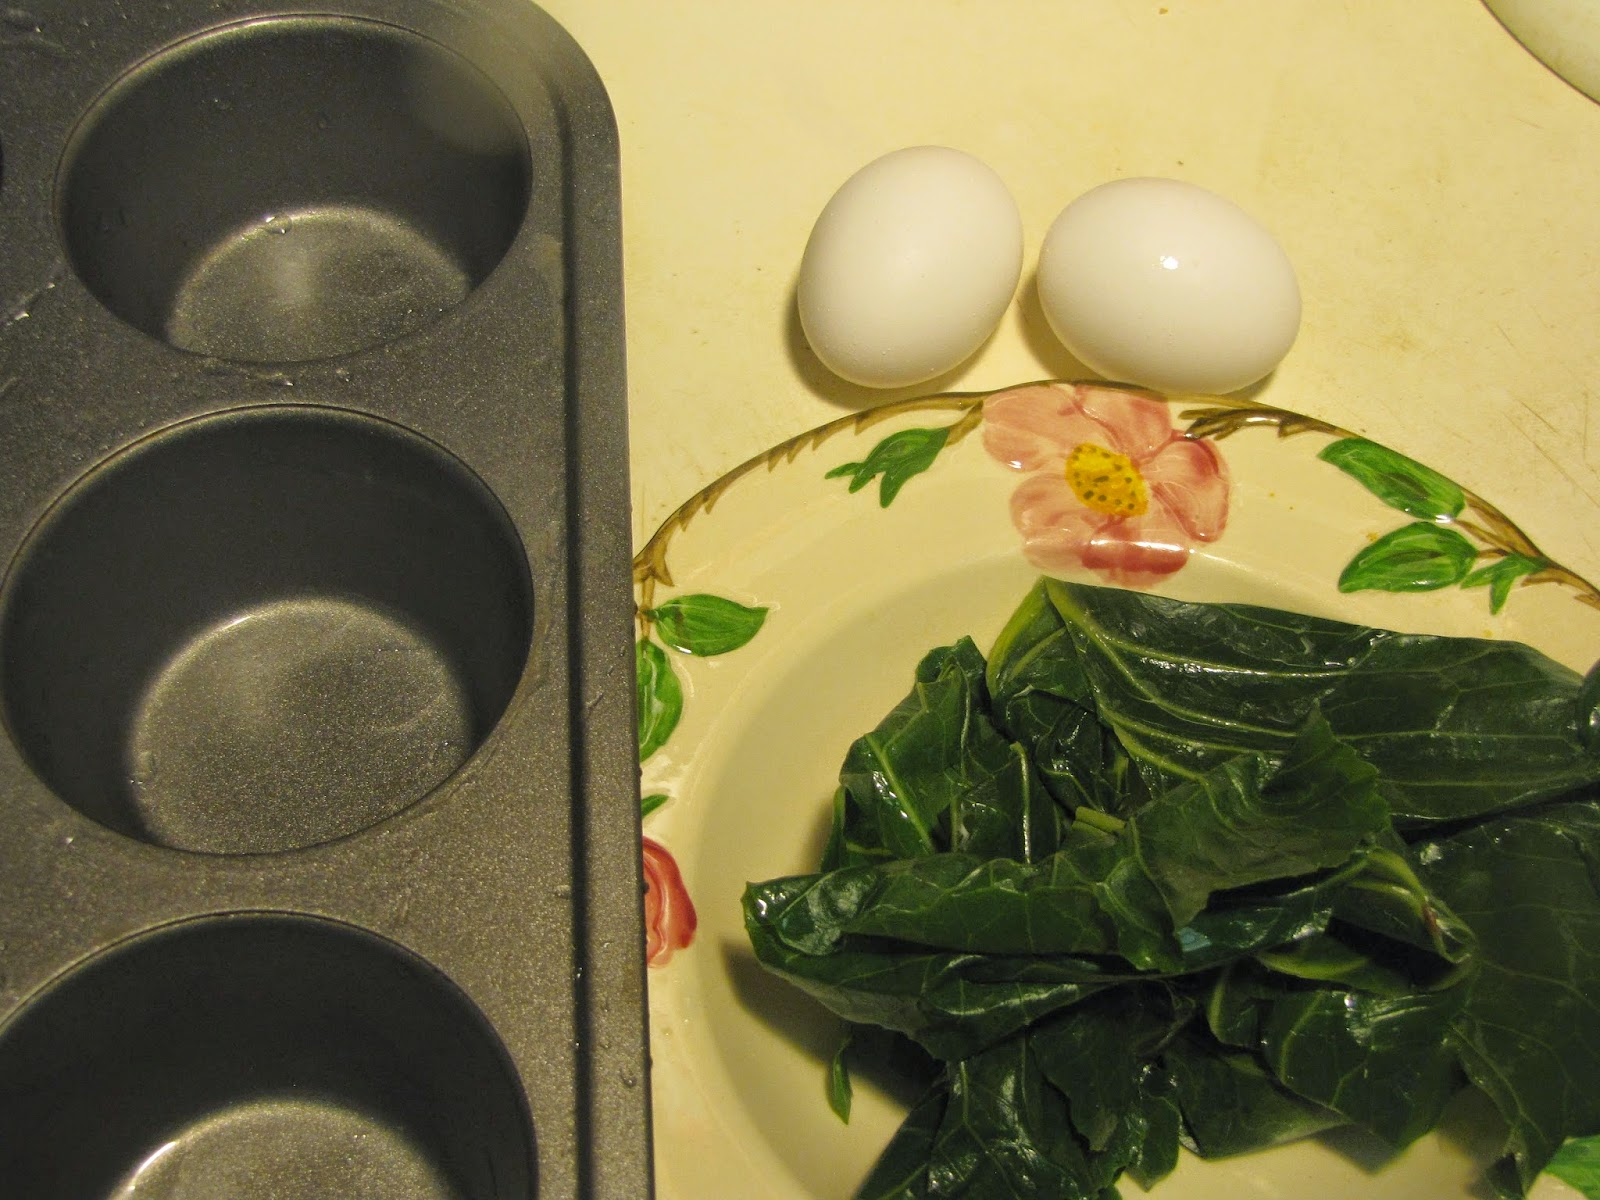 Cupcake pan, collard leaves and a couple of eggs